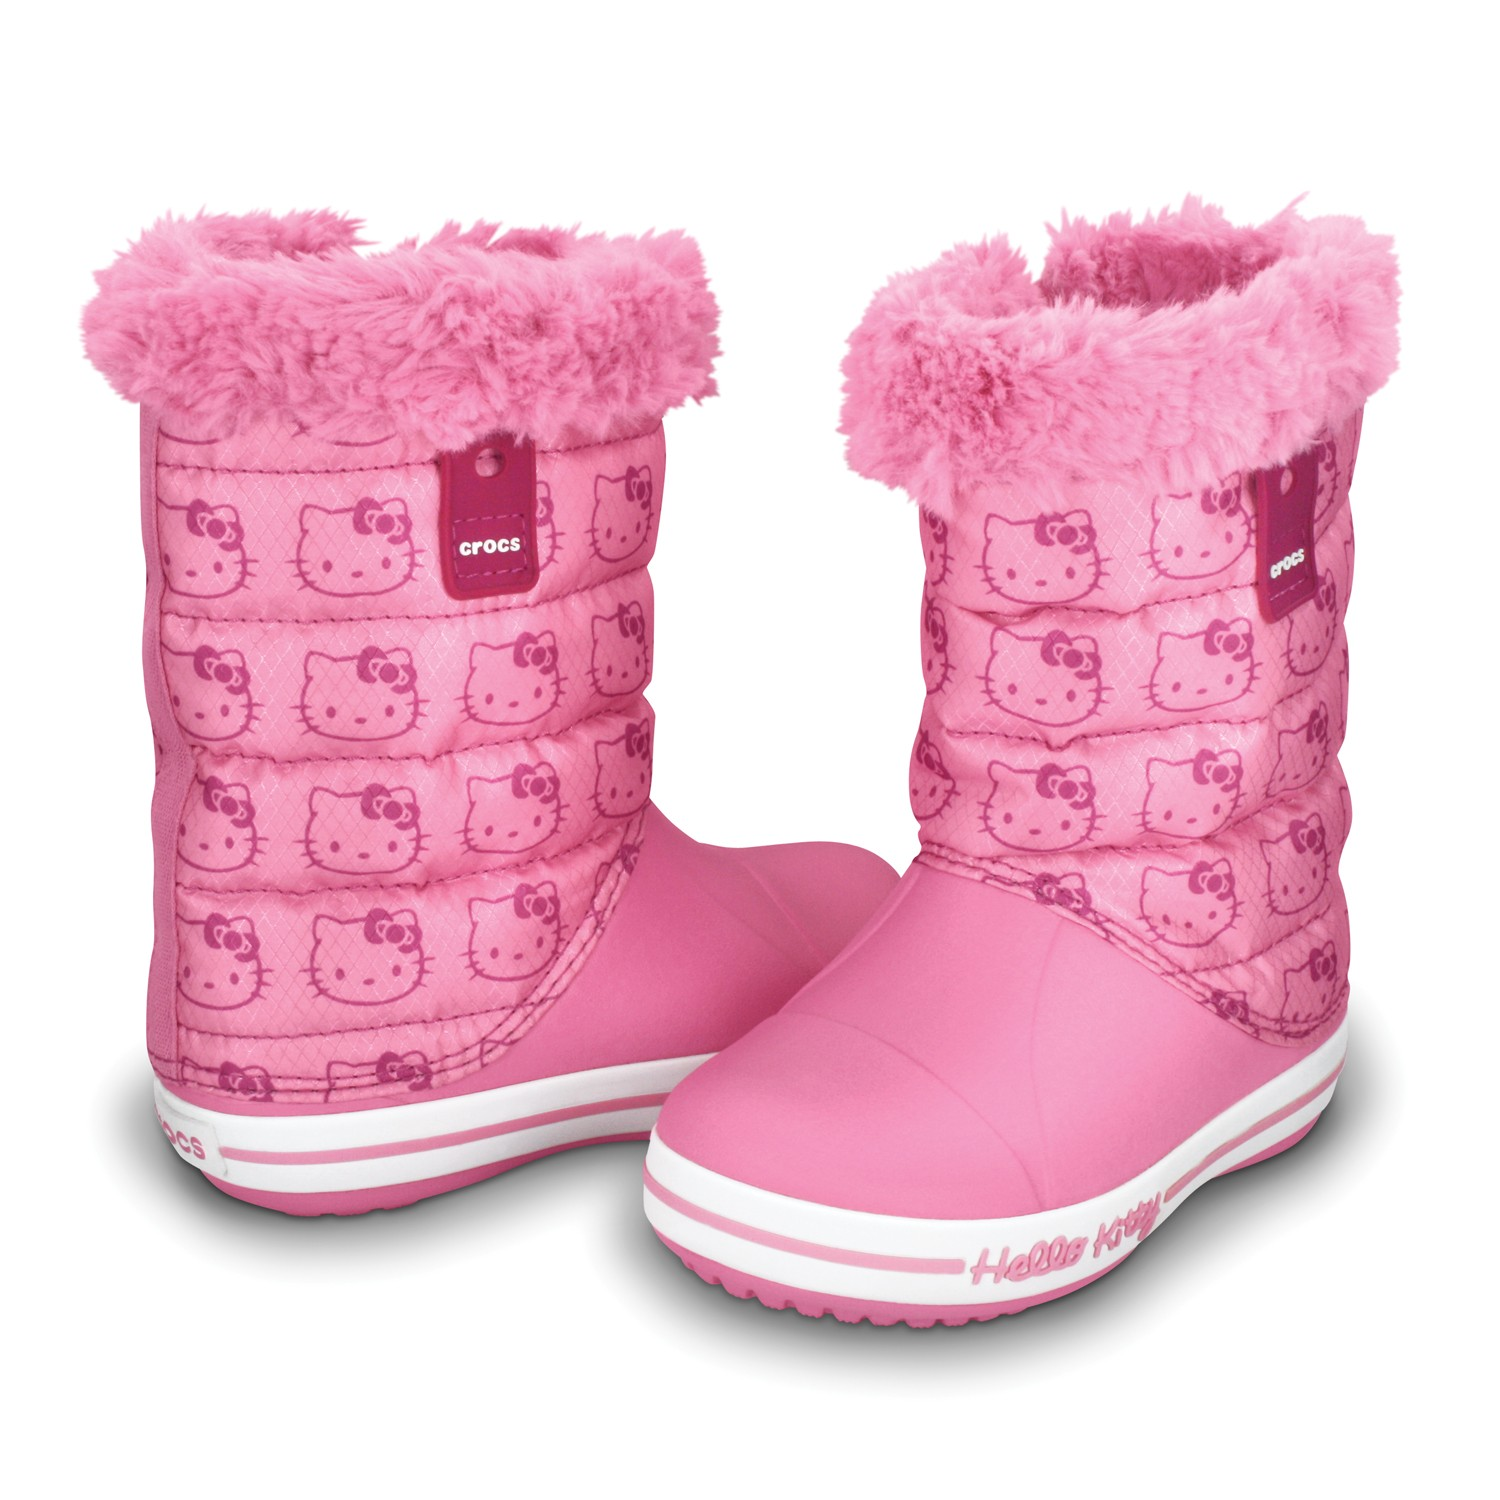 Crocs Hello Kitty Gust Boot  Boots  Everyday shoes  Shoes  Timarco eu